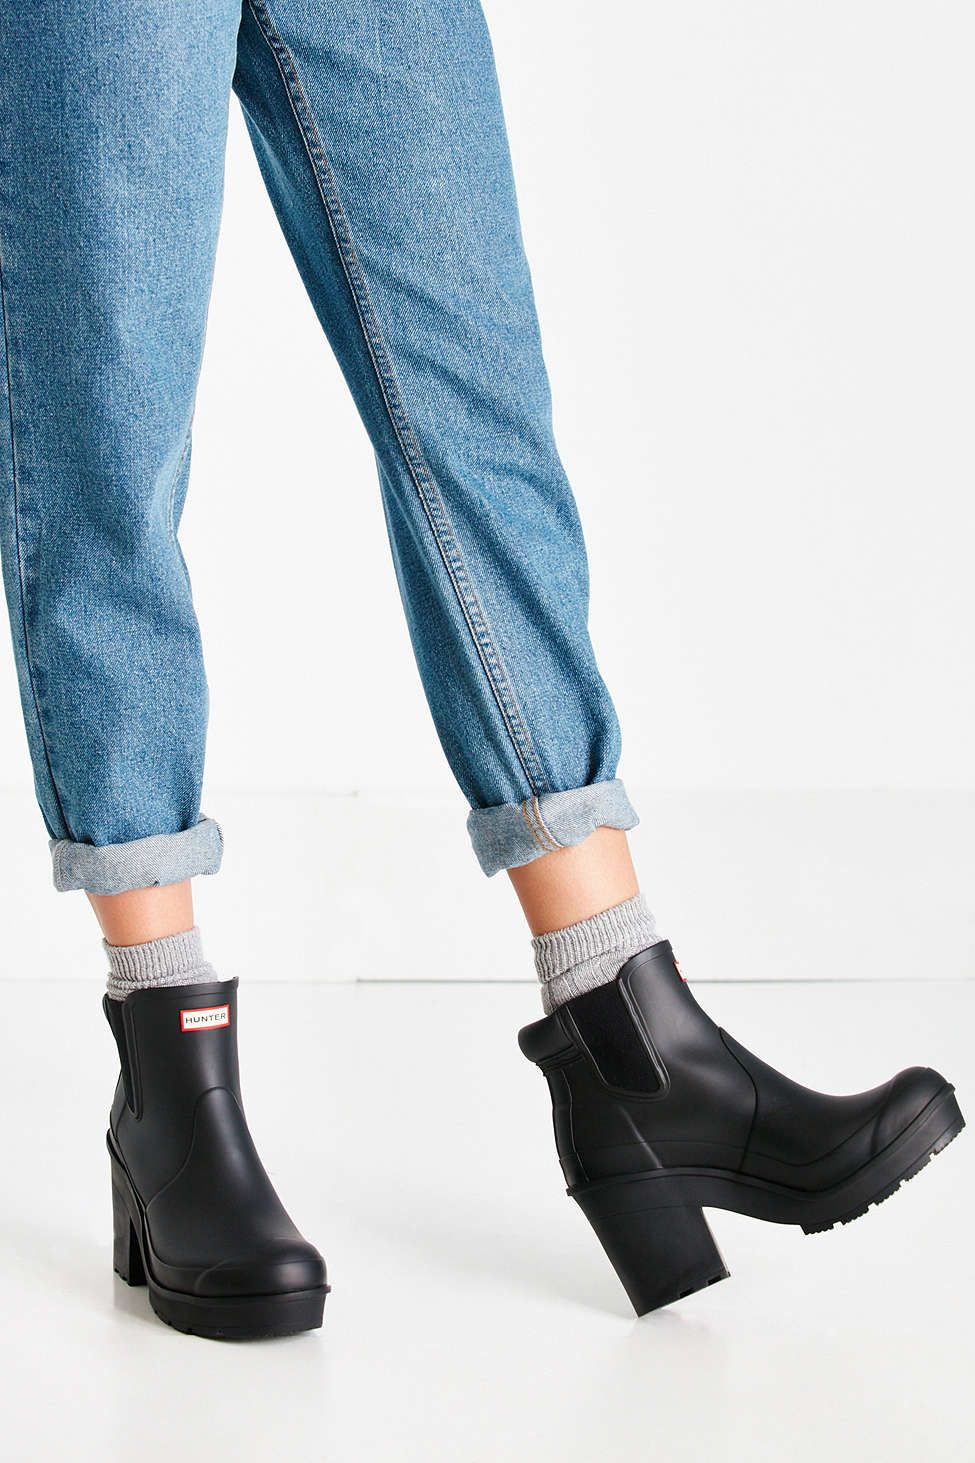 Hunter Original Block Heel Chelsea Boot - Urban Outfitters a213708538f